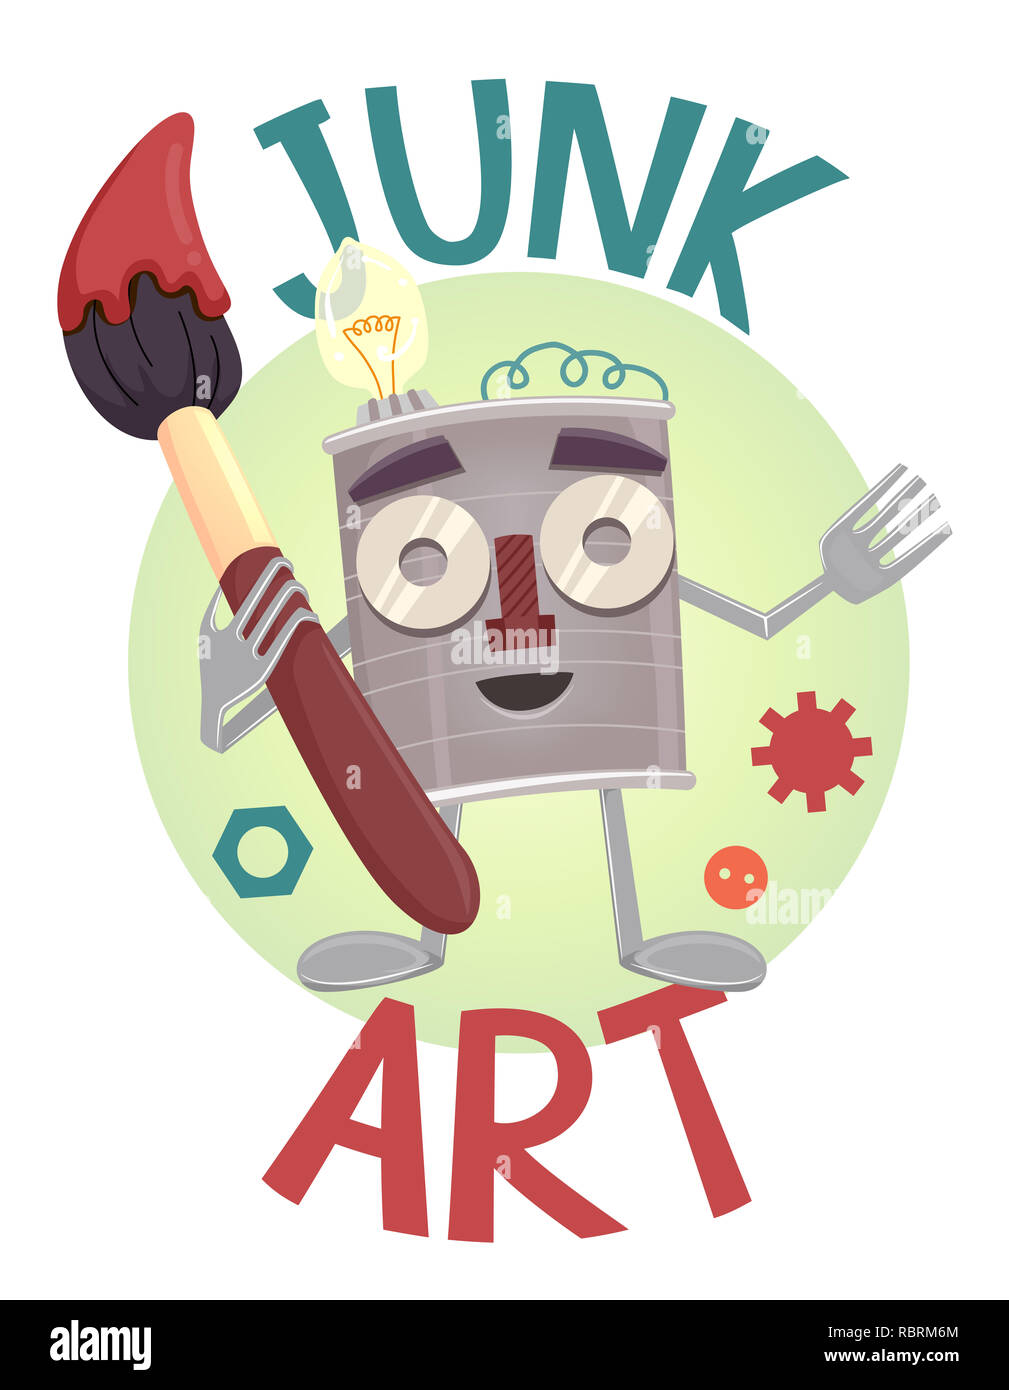 Illustration of a Tin Can Mascot with Fork and Spoon Hands and Feet Holding a Paintbrush with Junk Art Lettering - Stock Image